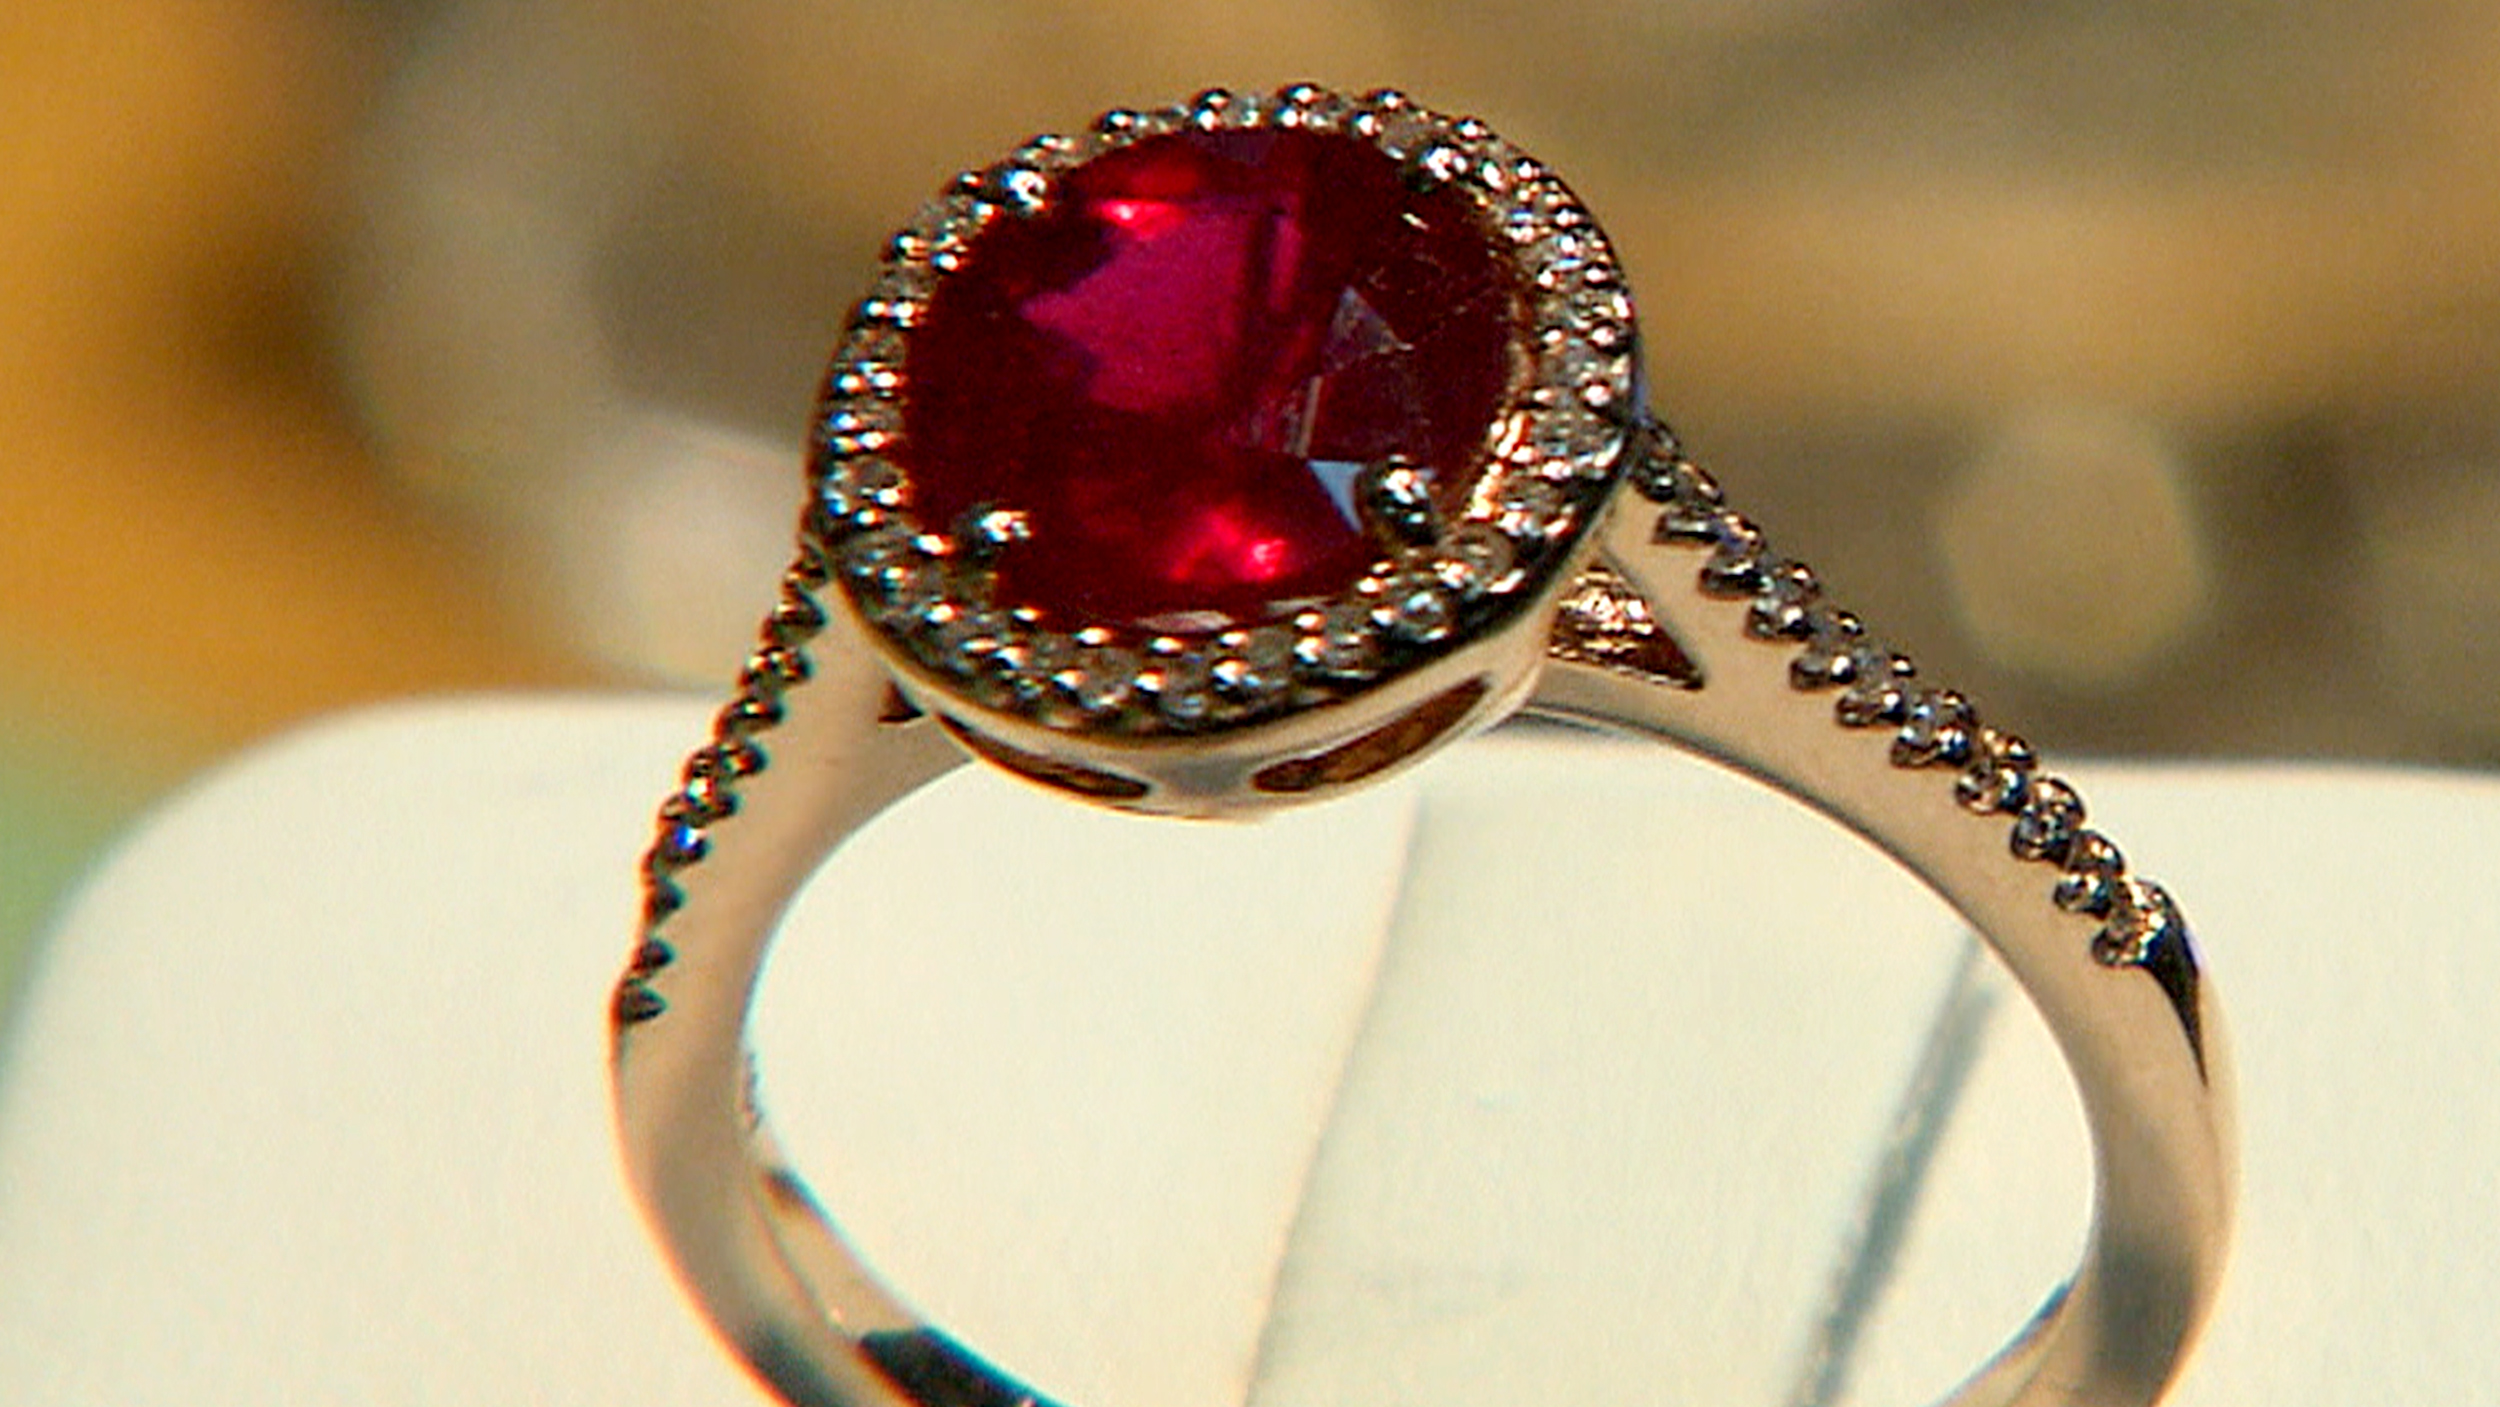 Red Ruby Alert Major Stores Selling Gems Filled With